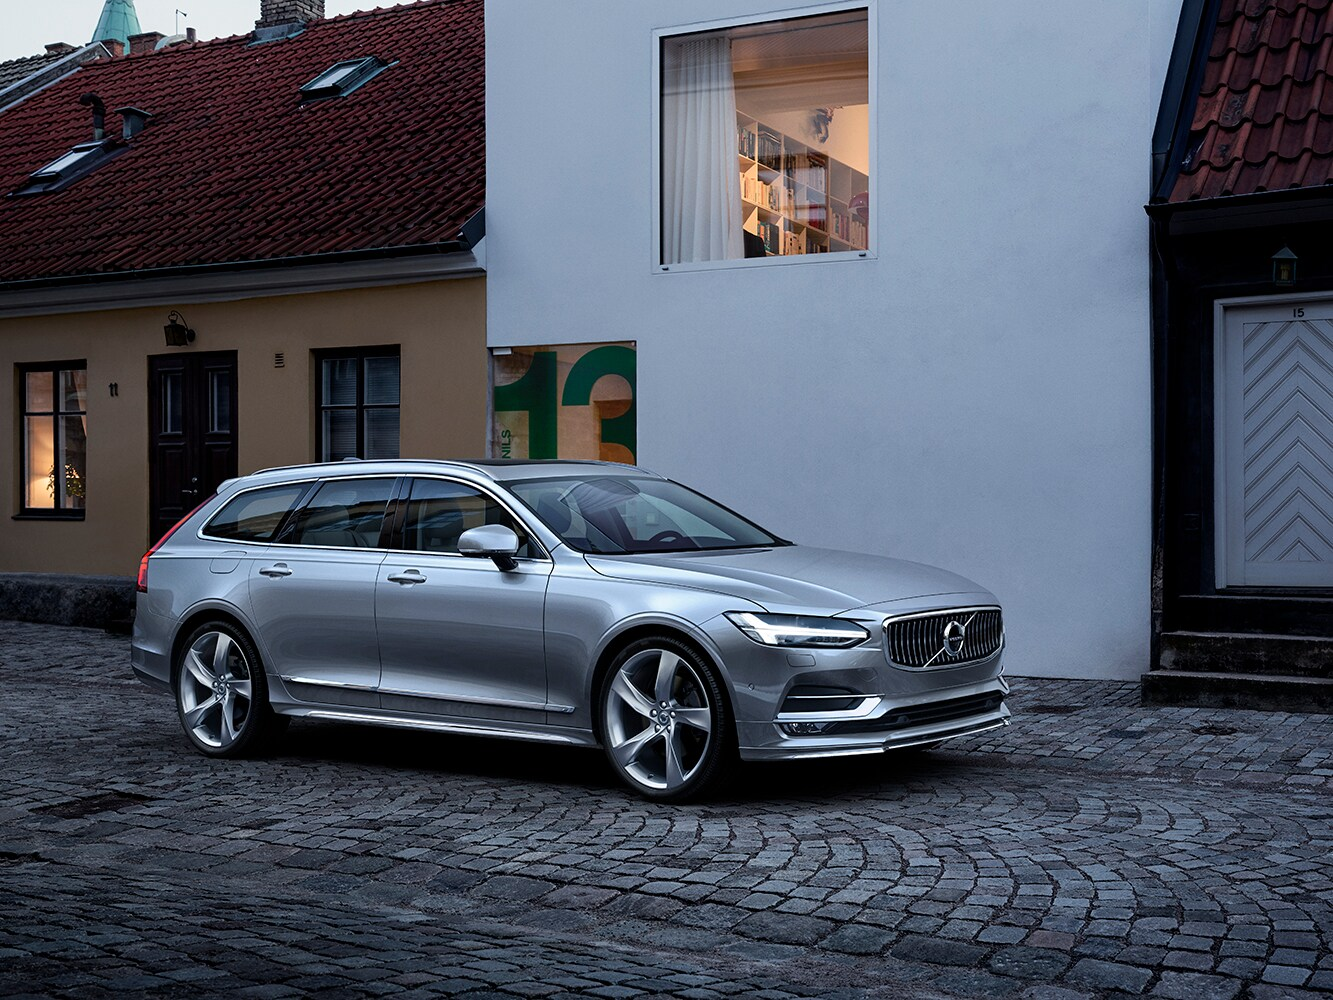 Volvo V90 Inscription na ulici